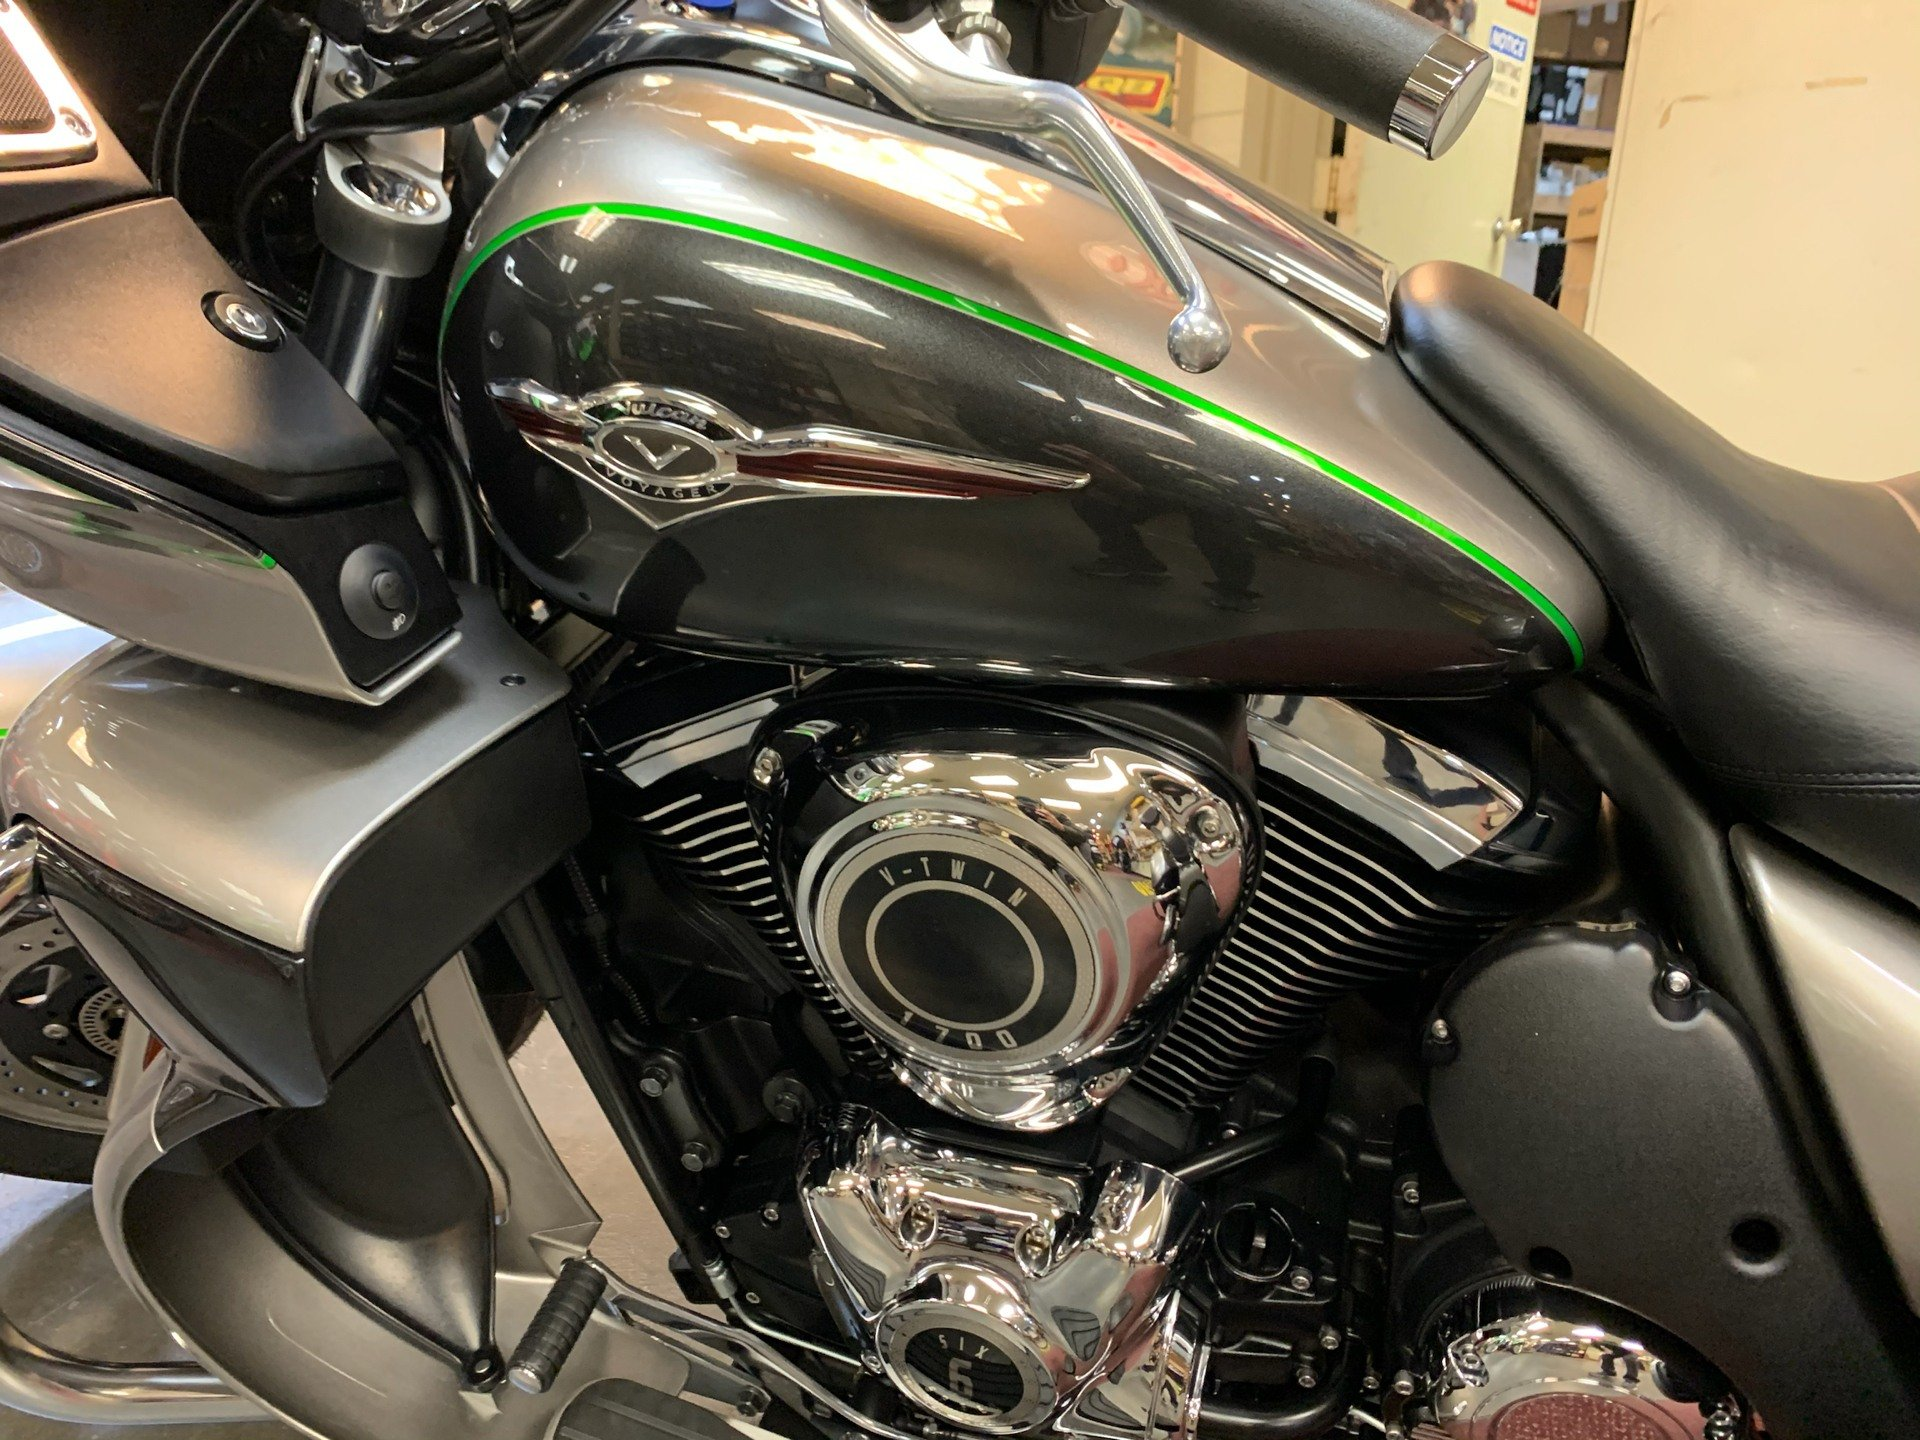 2020 Kawasaki Vulcan 1700 Voyager ABS in Petersburg, West Virginia - Photo 7